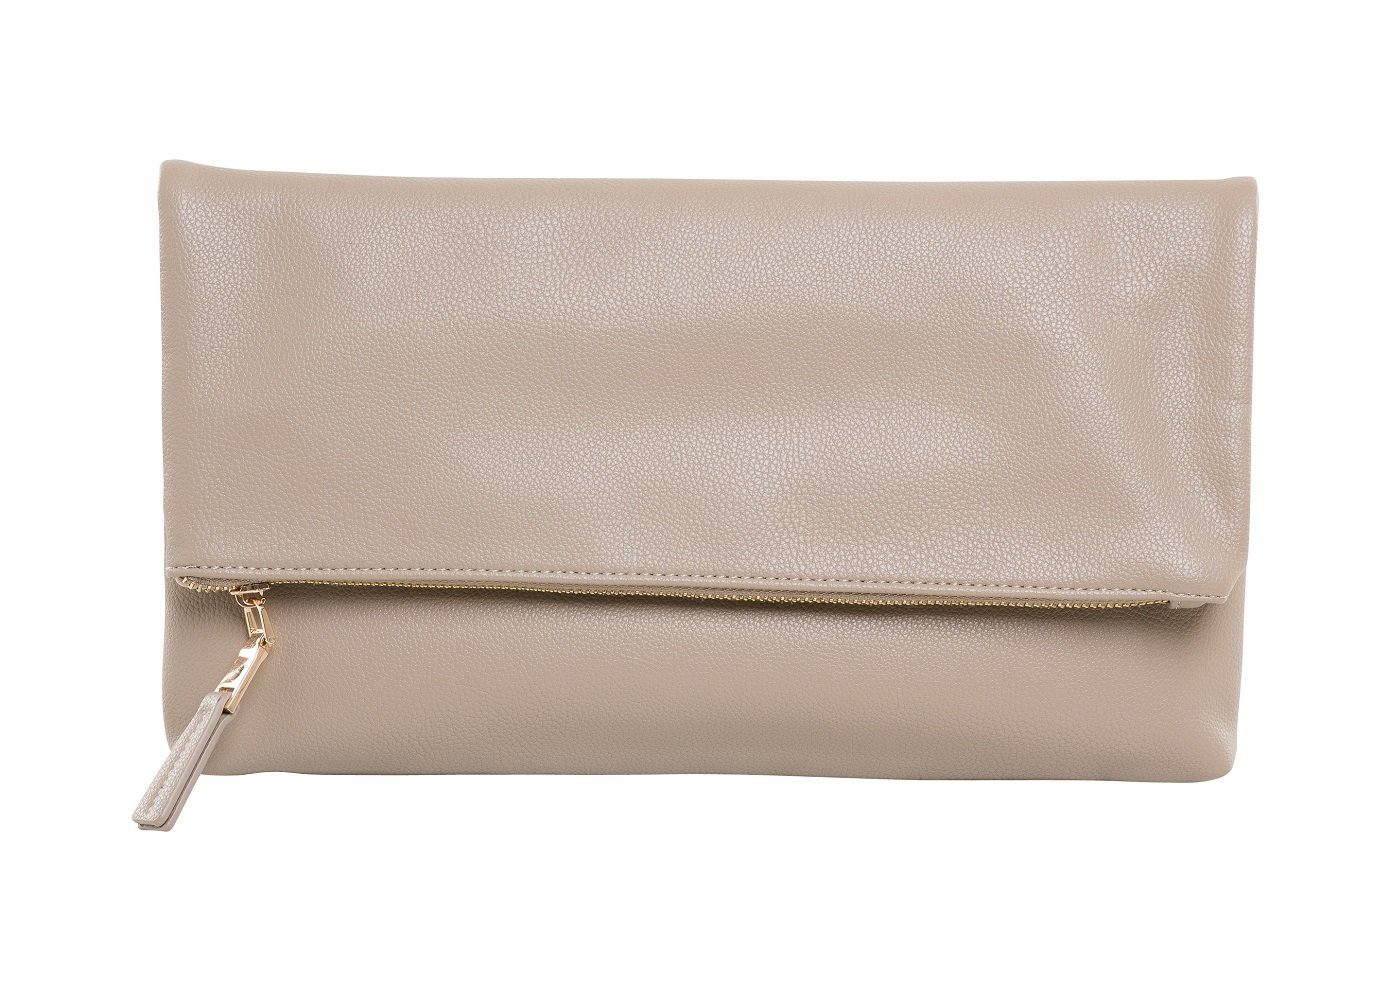 MARKFRAN Oversized Foldover Womens Handbag Clutch Purse (Taupe Grey)